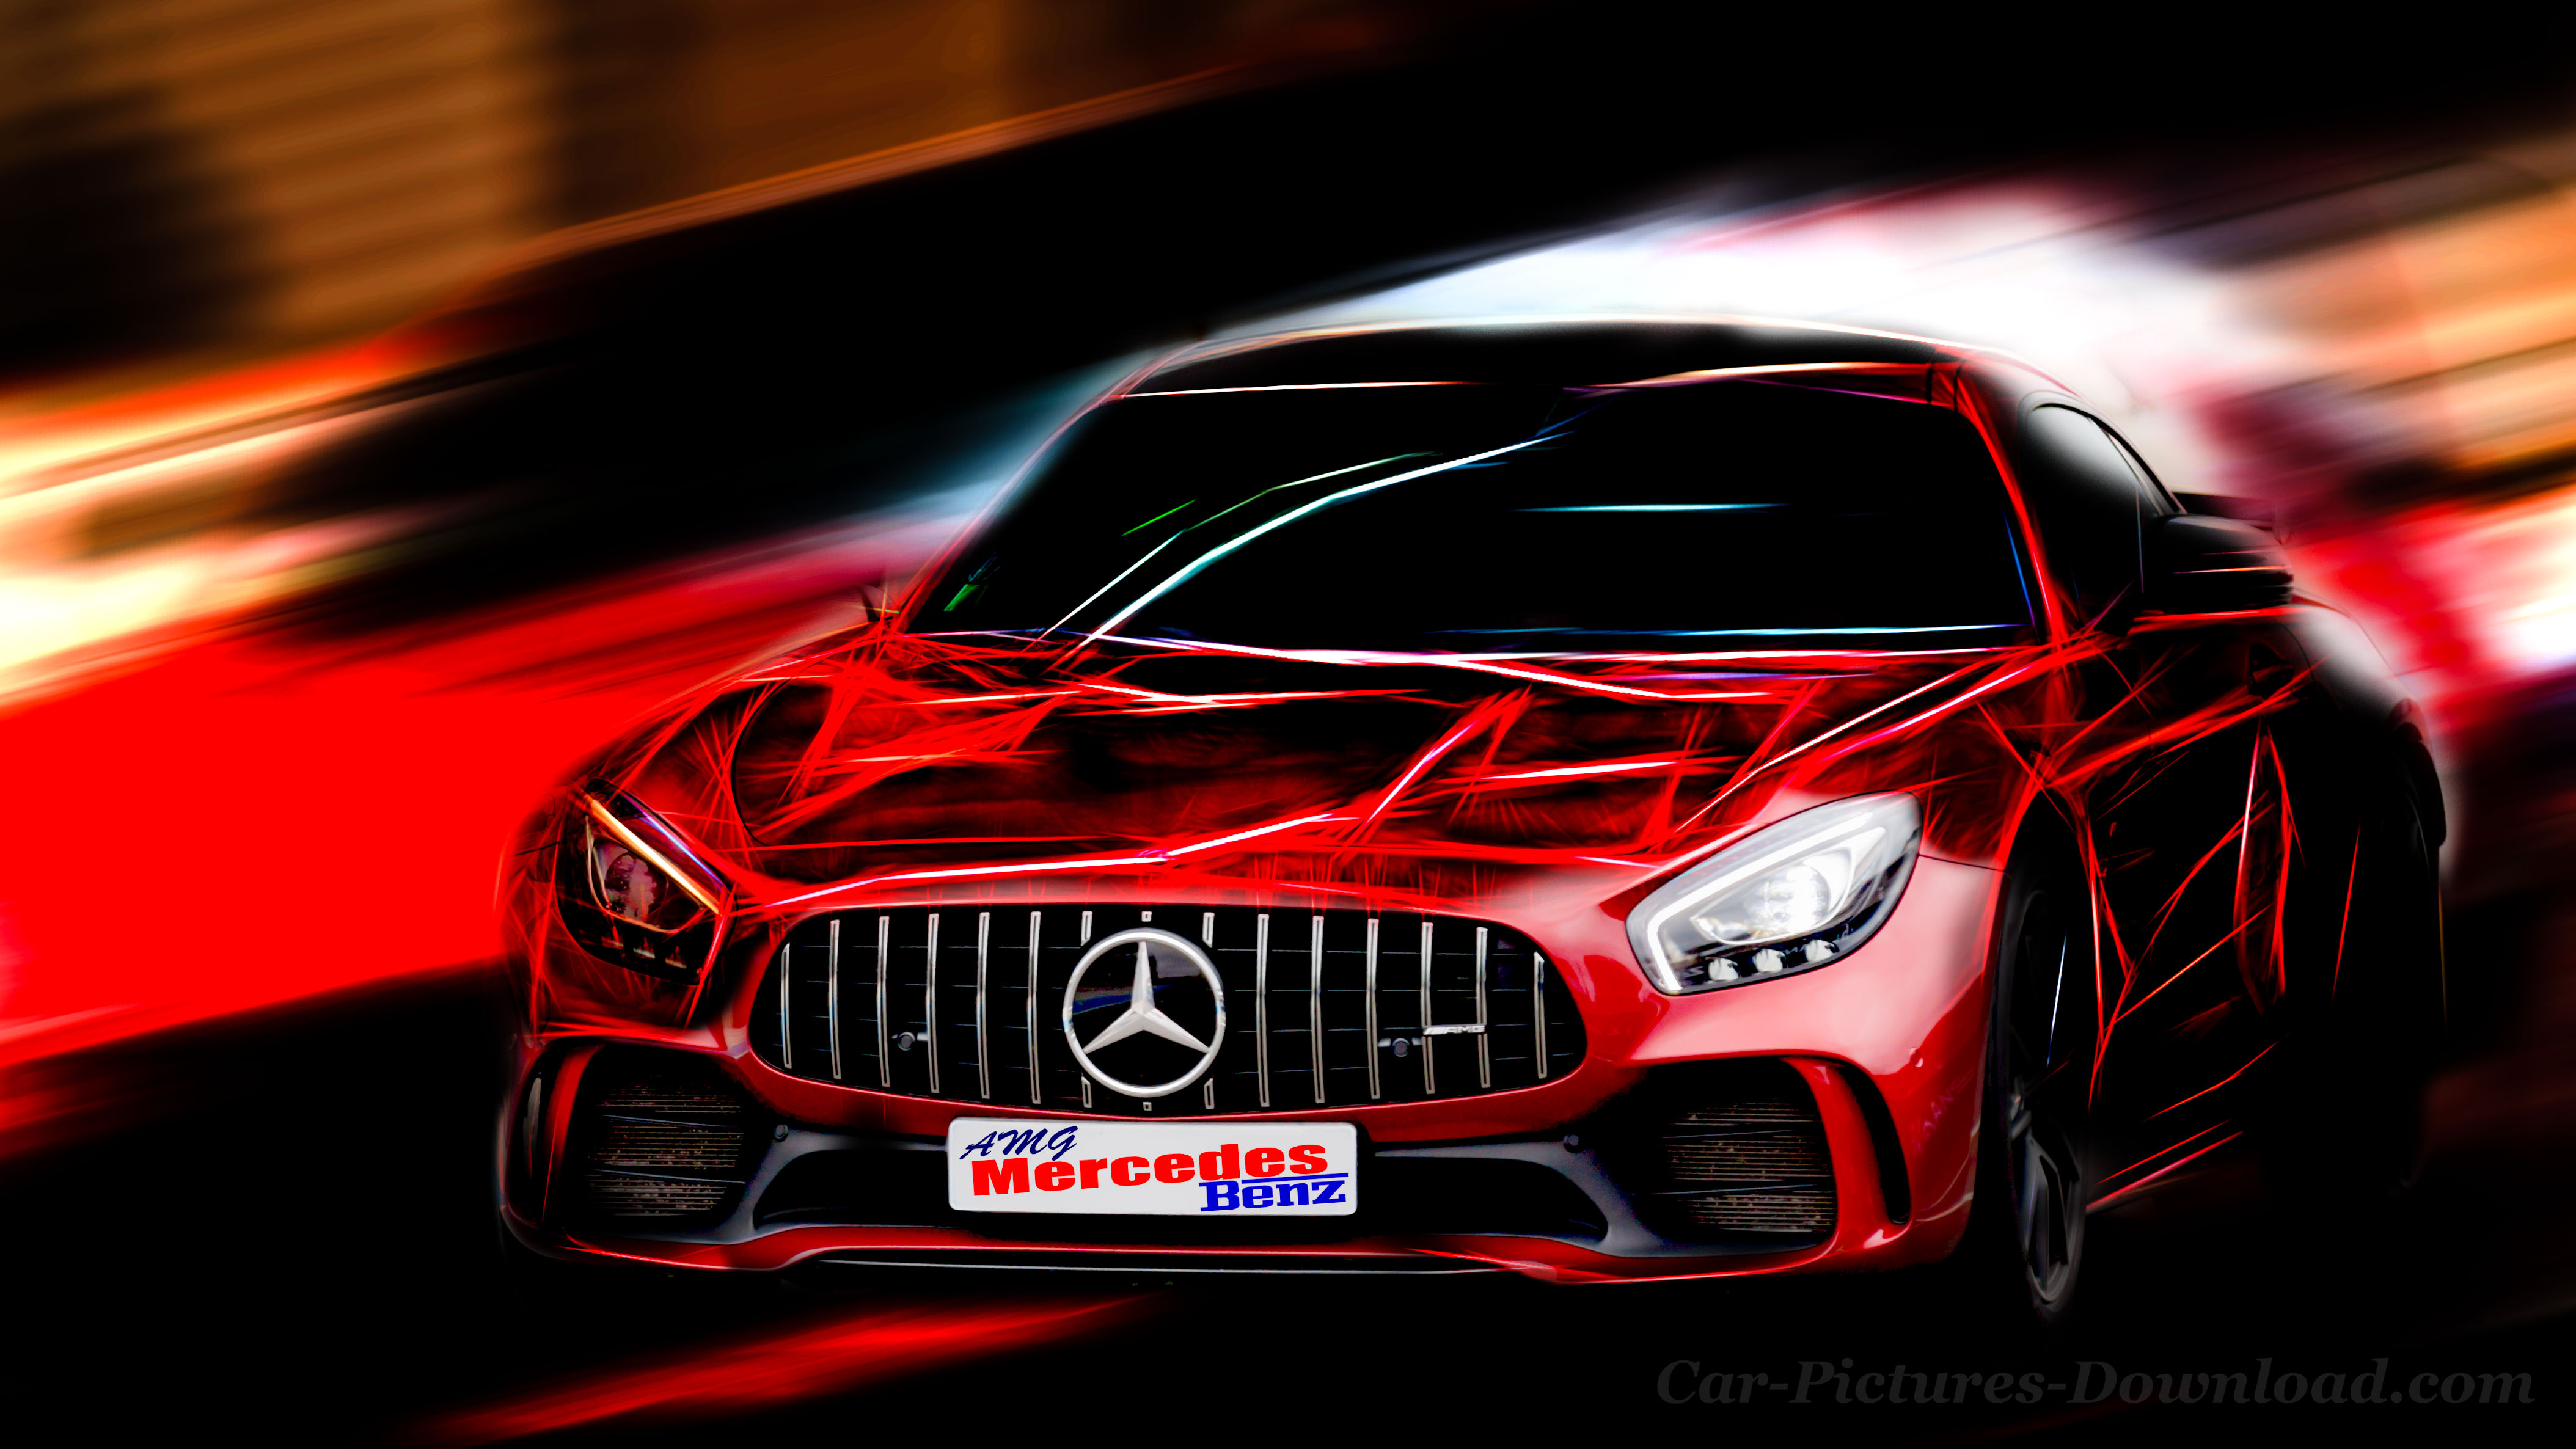 Sizing also makes later remov. View Car Wallpaper 4k Download Pictures Picture Idokeren